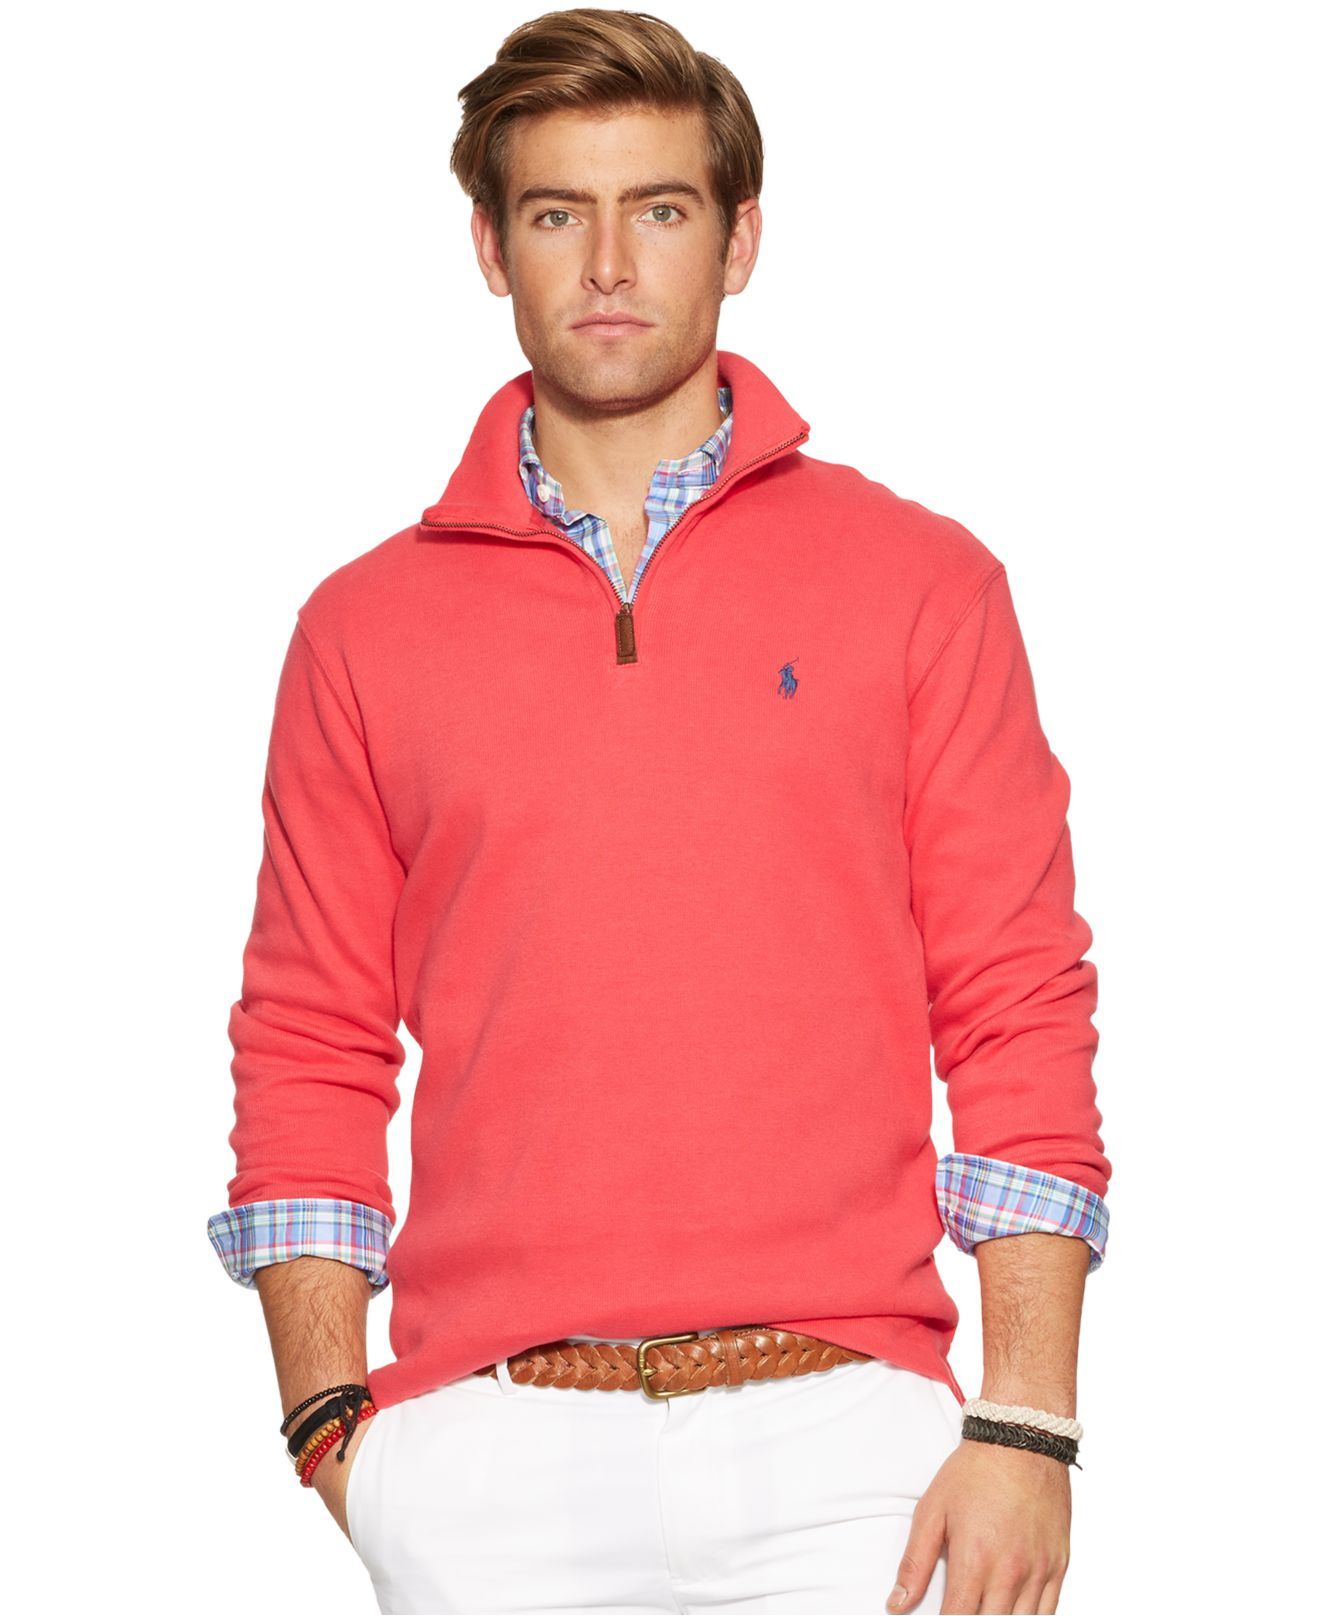 polo ralph lauren french rib mockneck pullover in red for men lyst. Black Bedroom Furniture Sets. Home Design Ideas